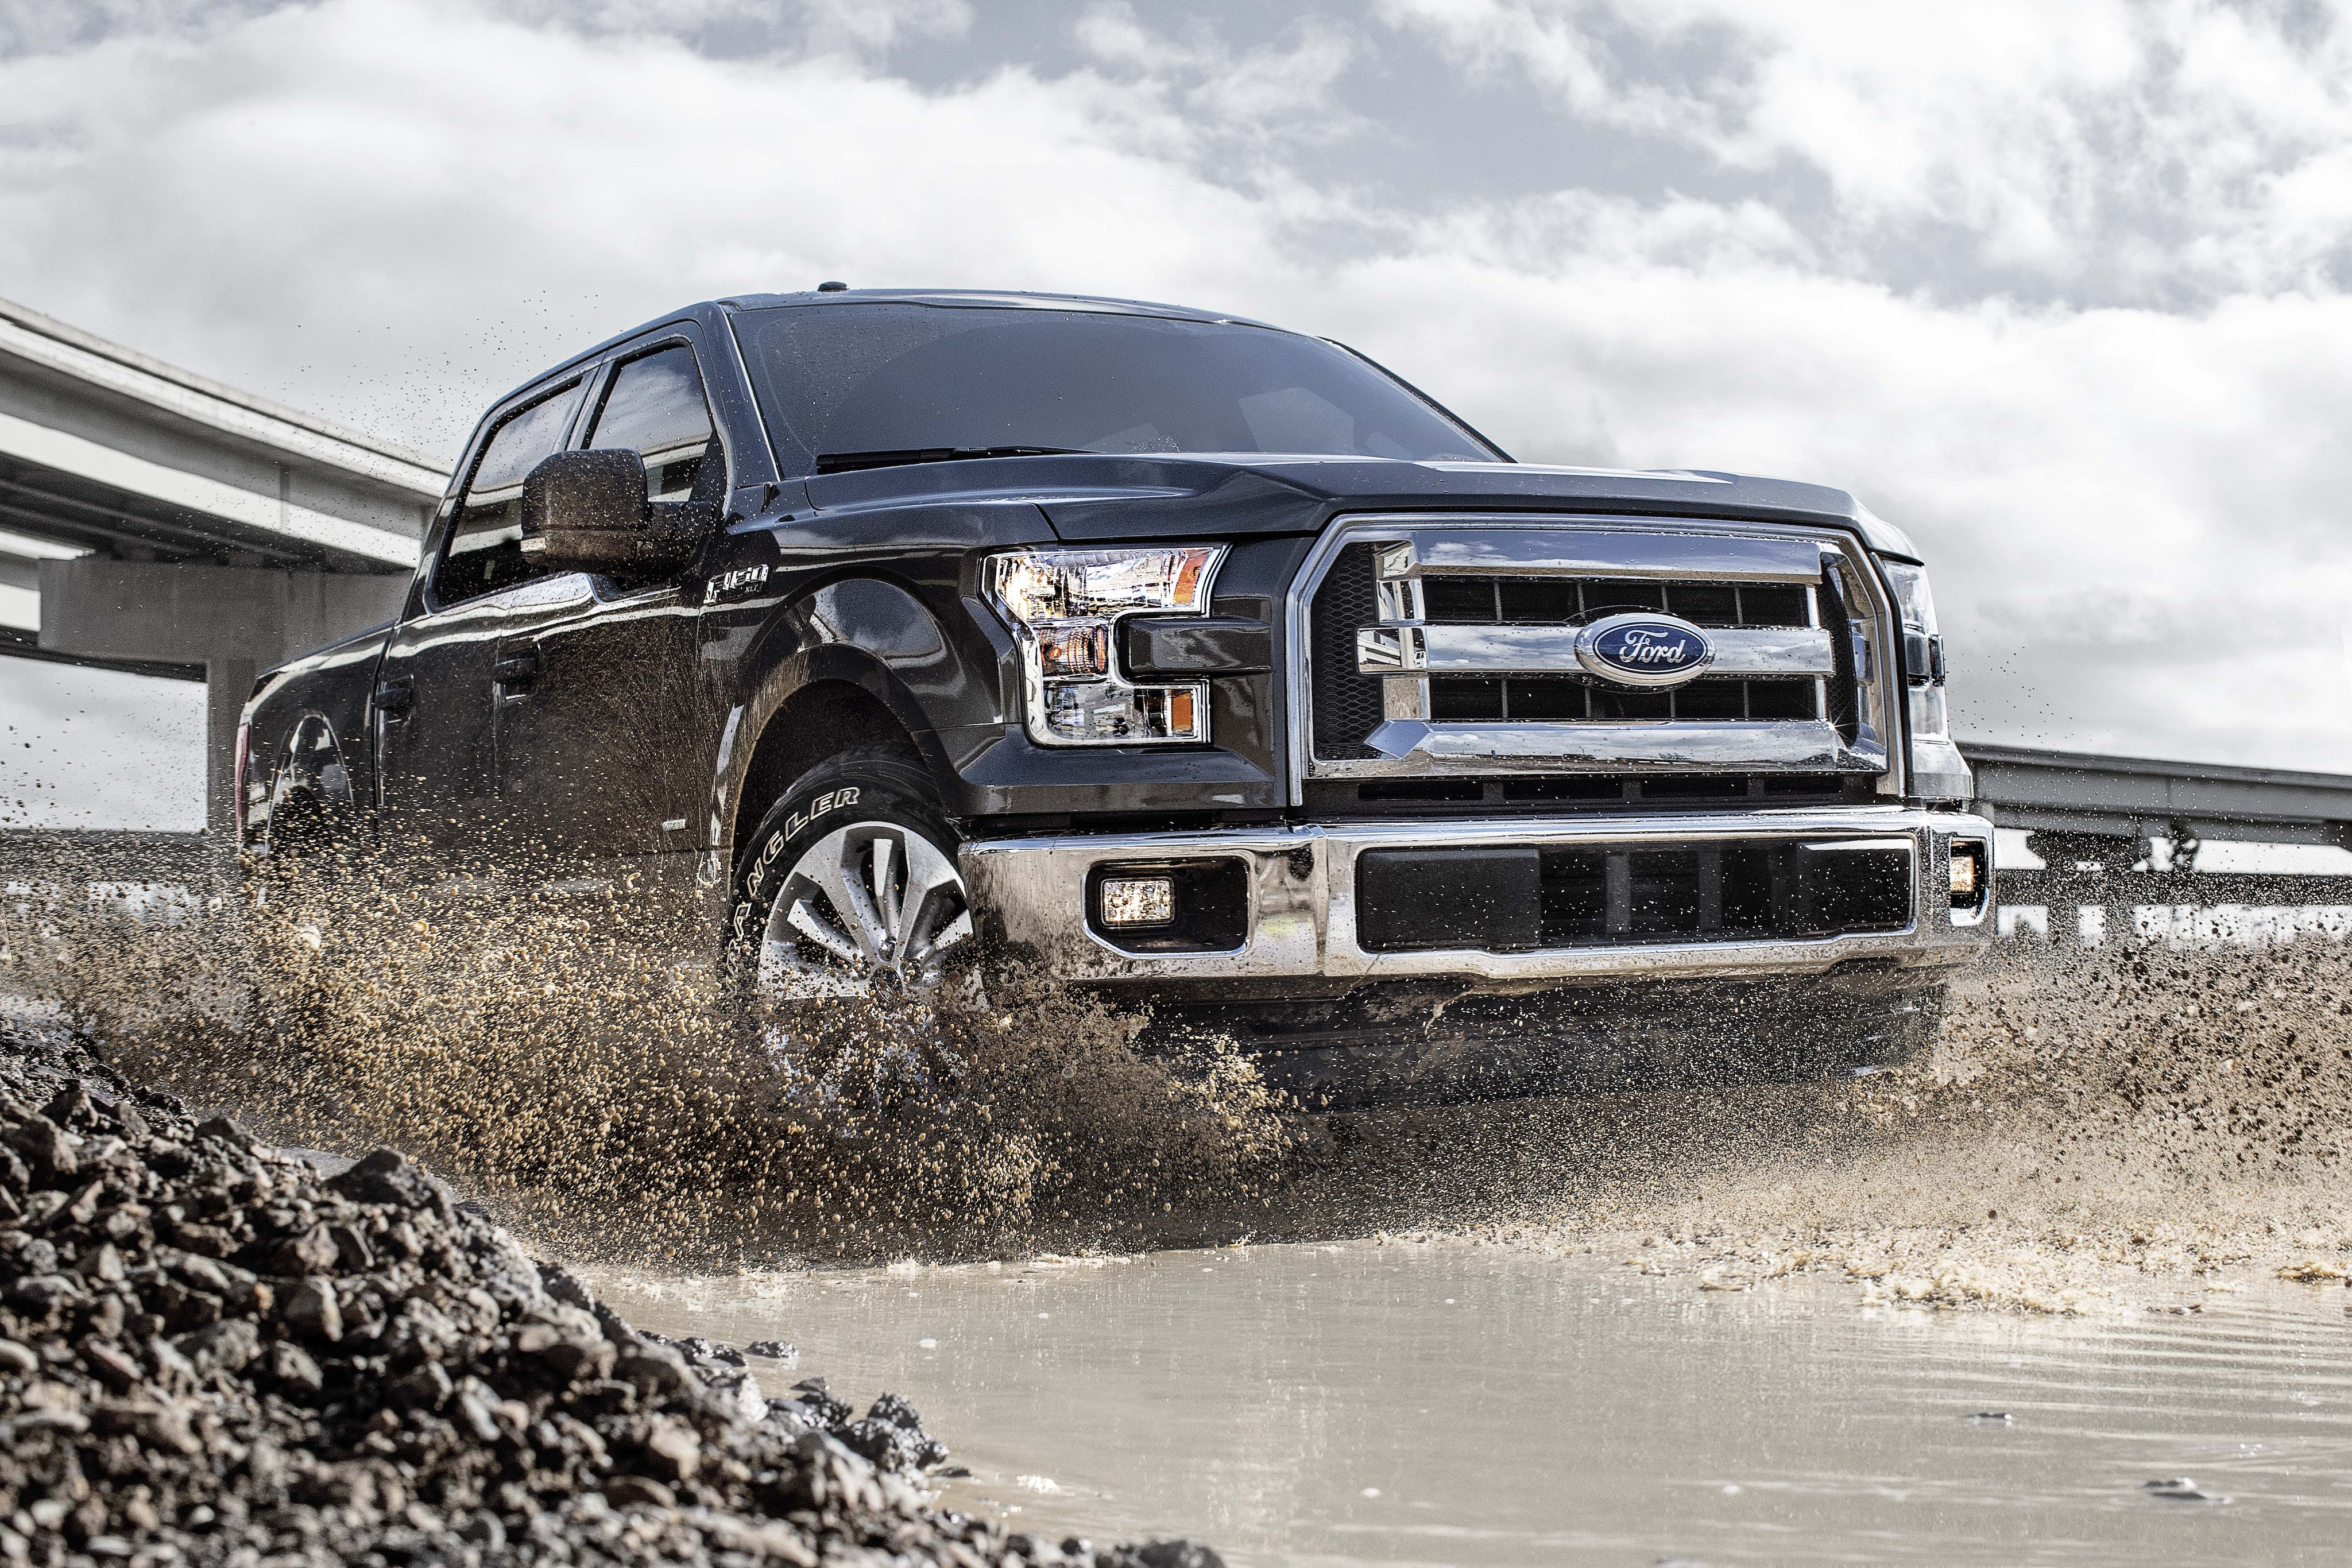 Maclin Ford | Vehicles for sale in Calgary, AB T2H 2S8